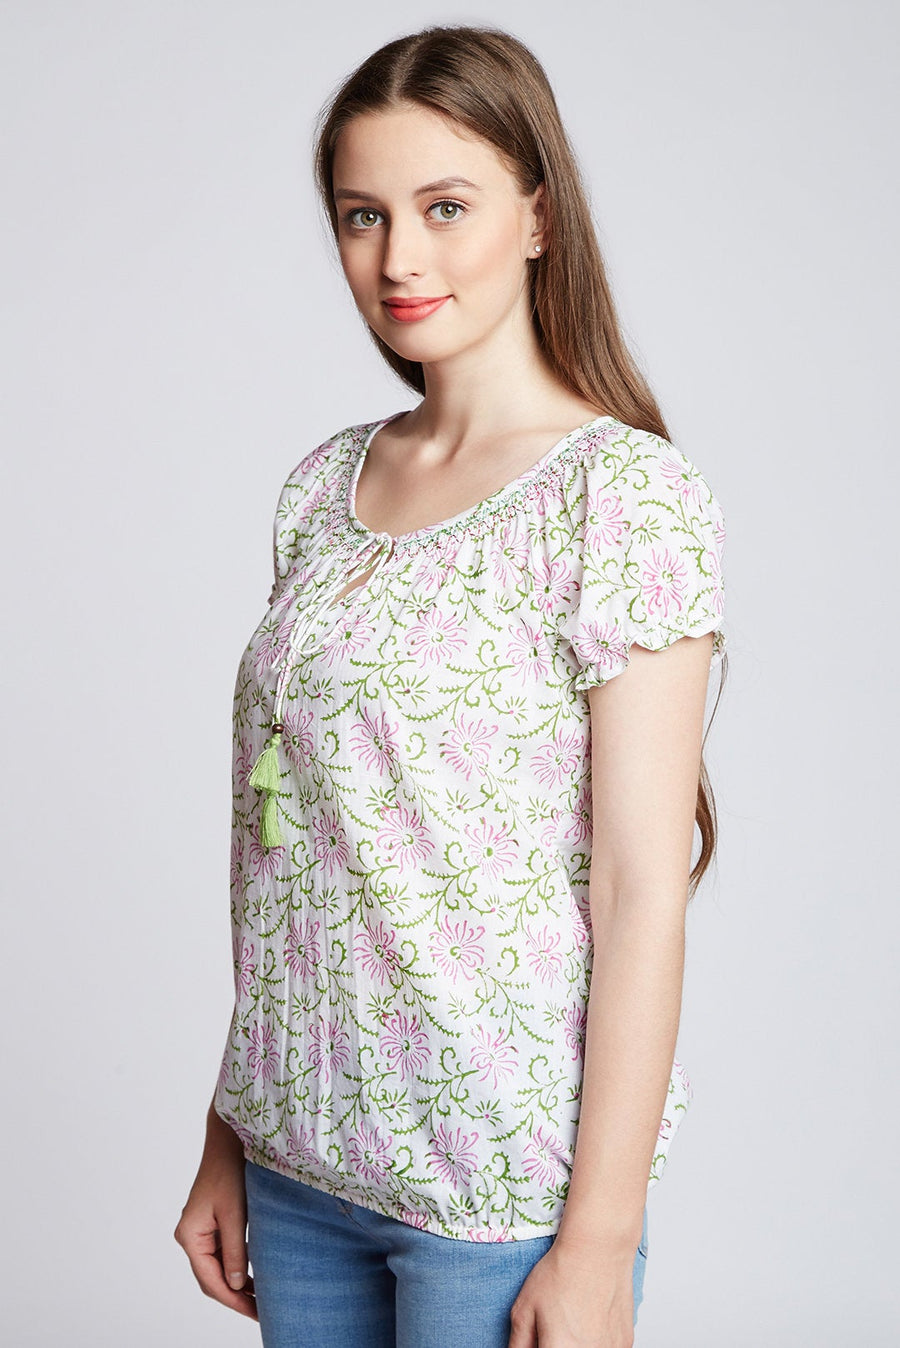 Hand block printed casual elasticated smocking Top/ Blouse